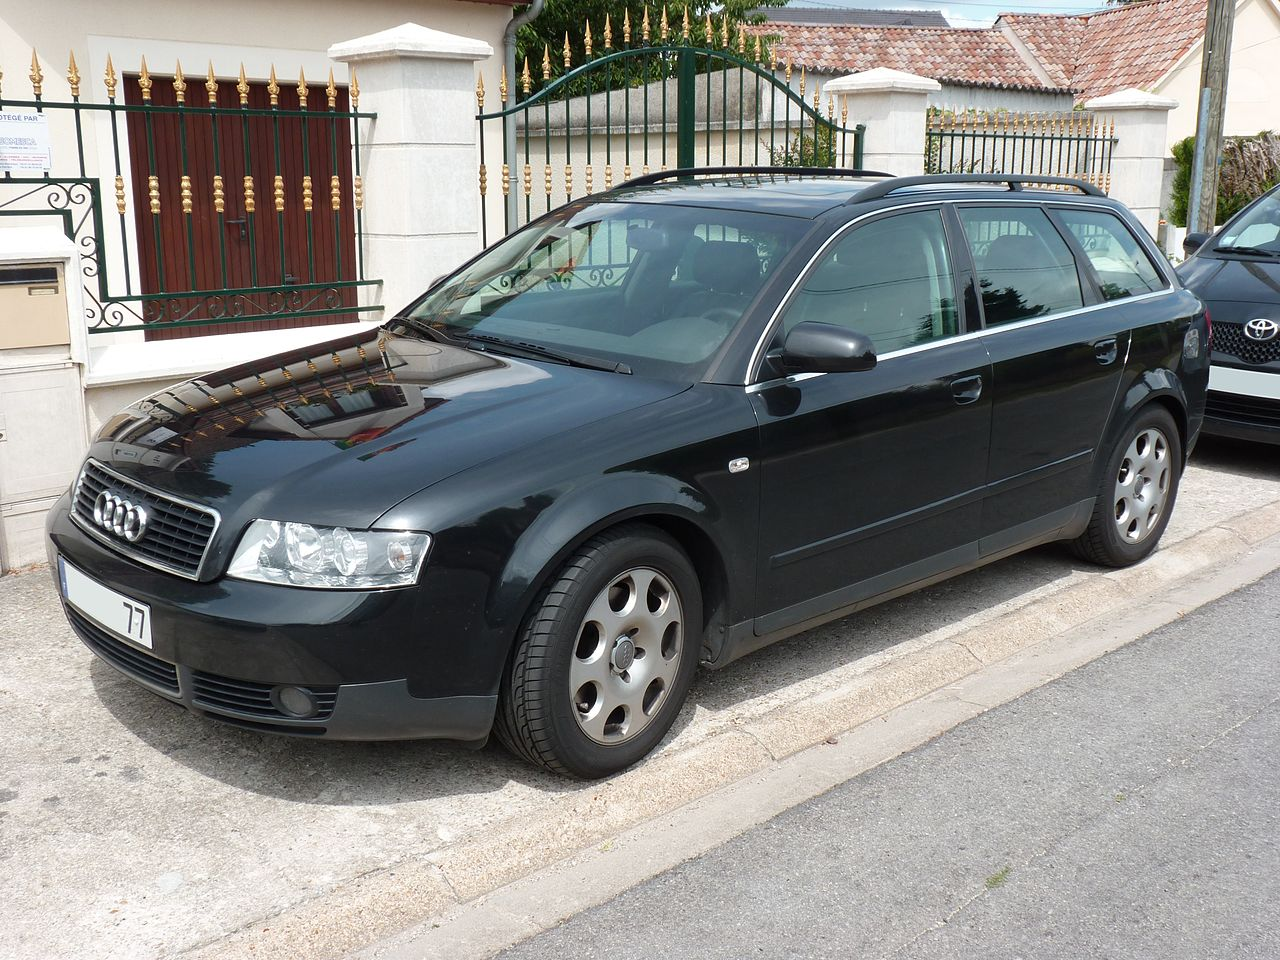 file audi a4 avant 2 5 tdi 2002 jpg wikimedia commons. Black Bedroom Furniture Sets. Home Design Ideas